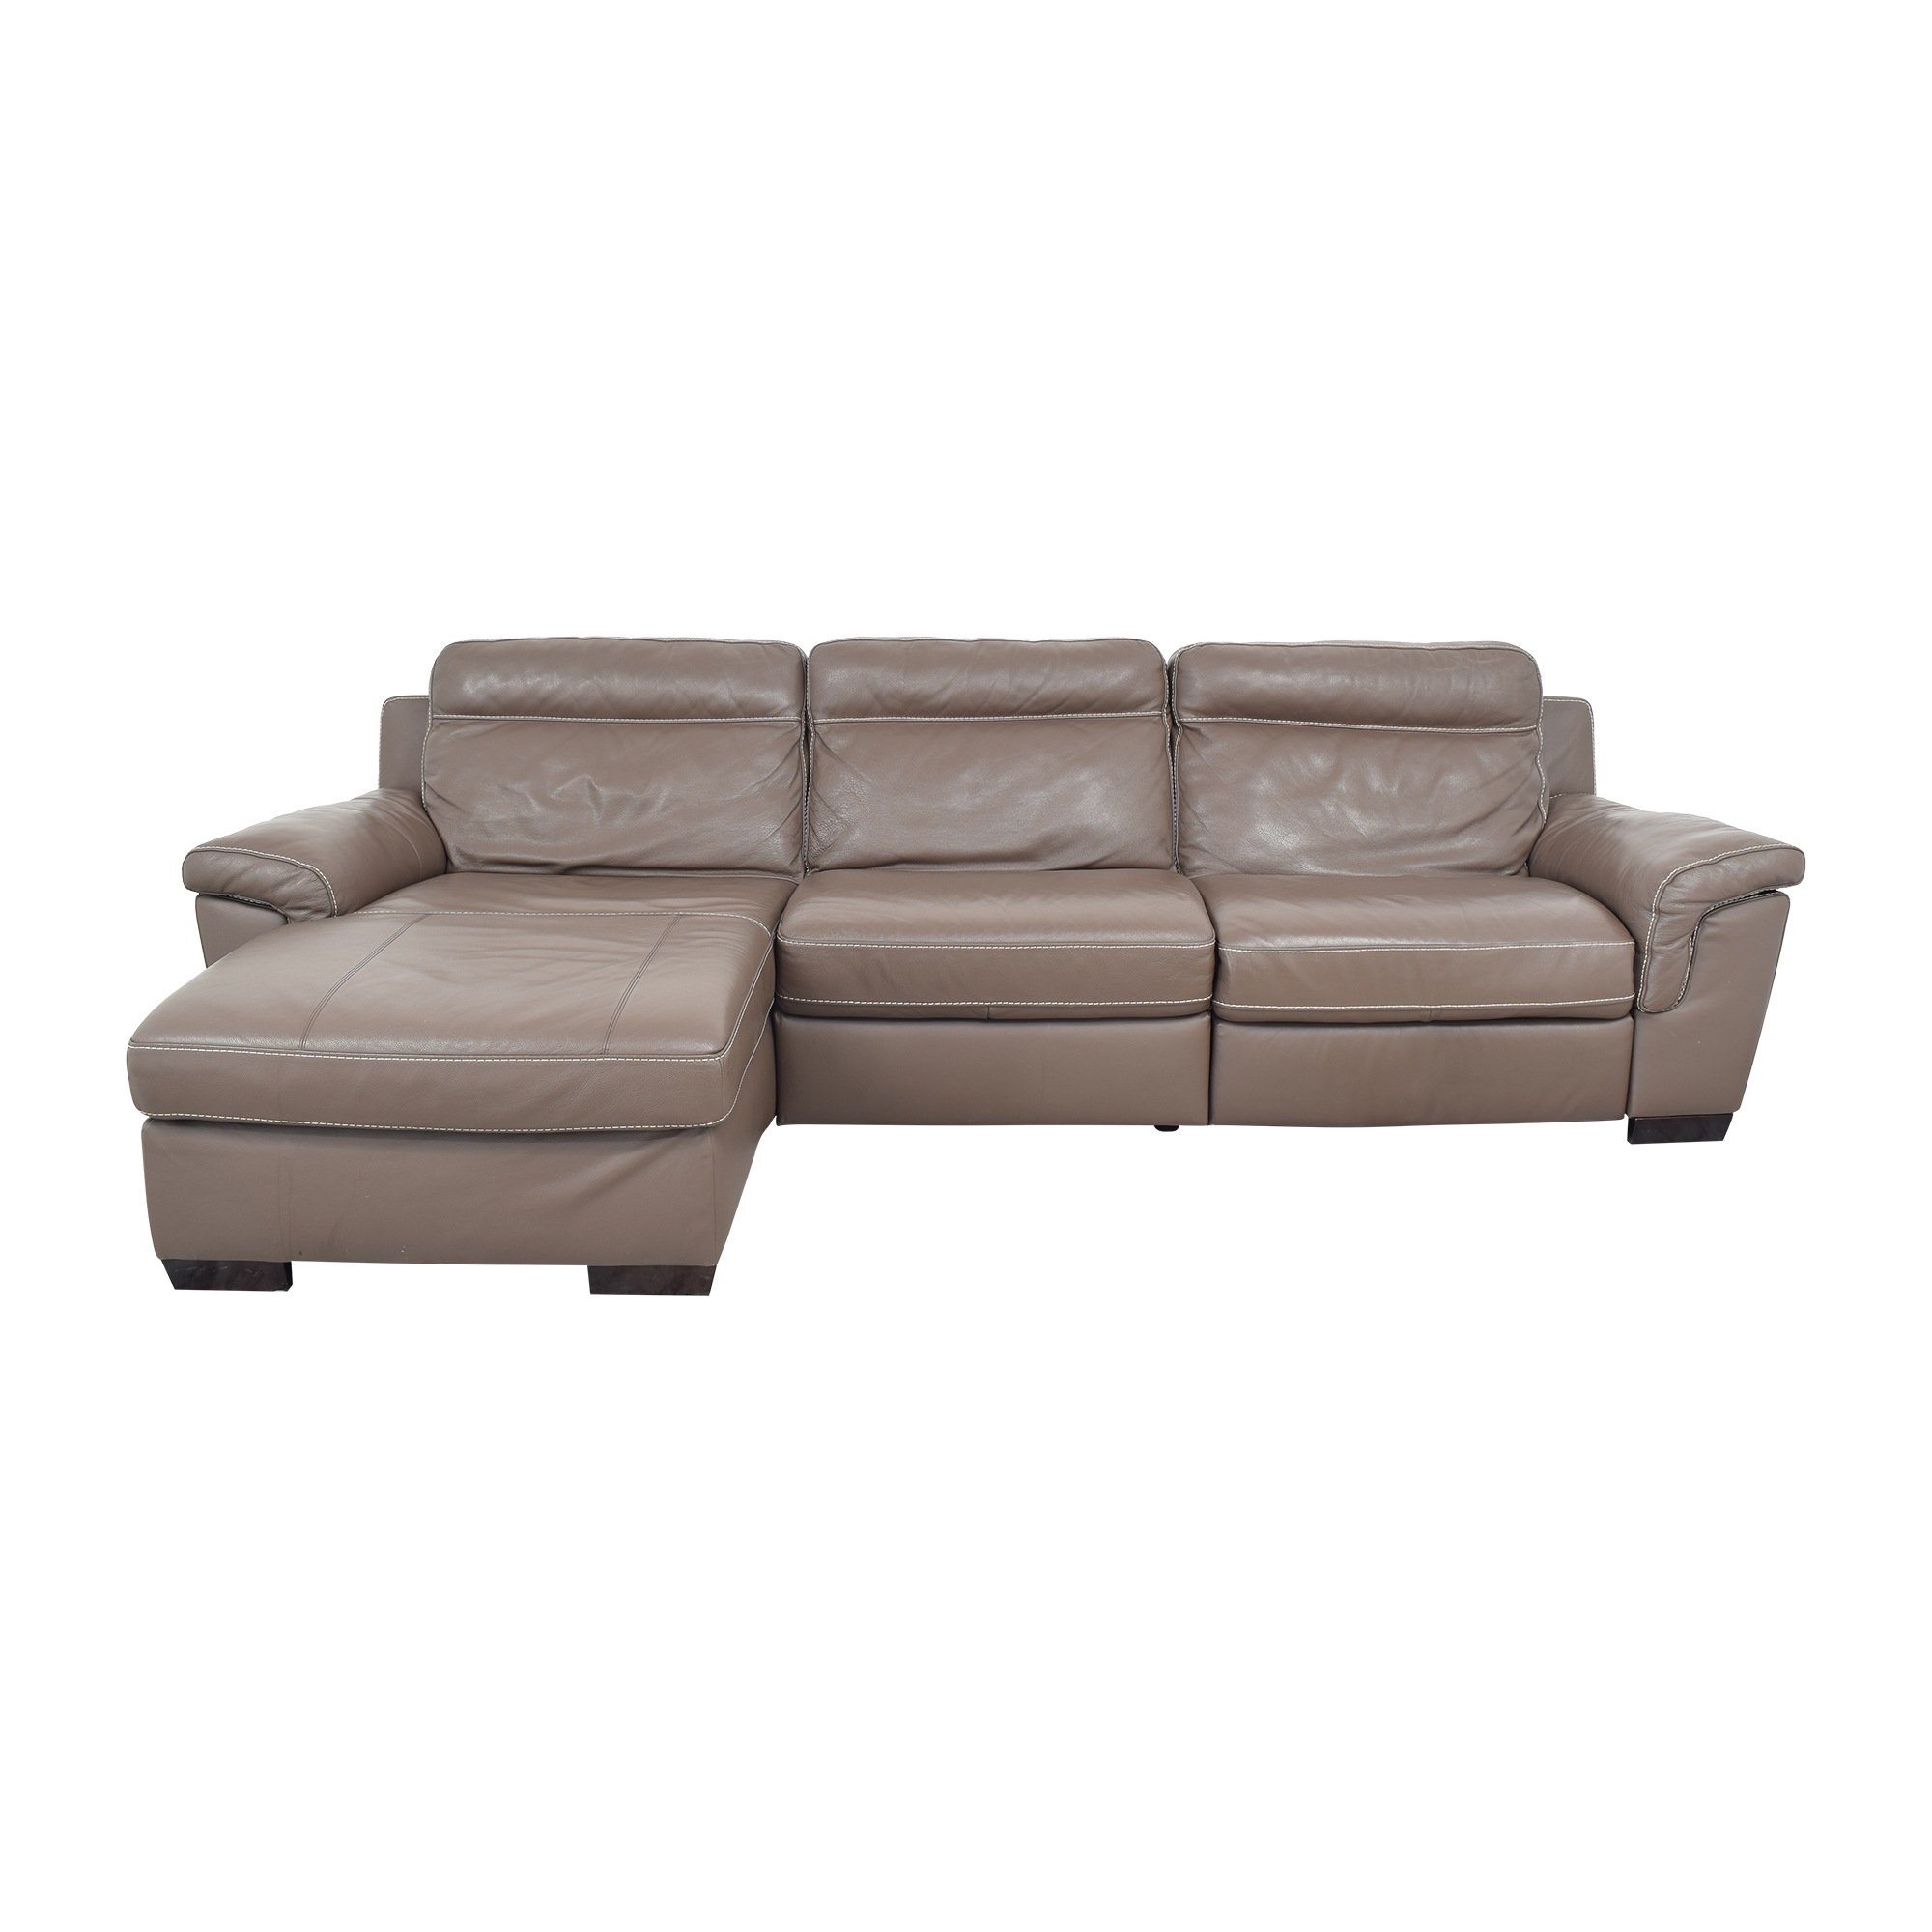 shop Natuzzi Natuzzi Reclining Sectional with Chaise online